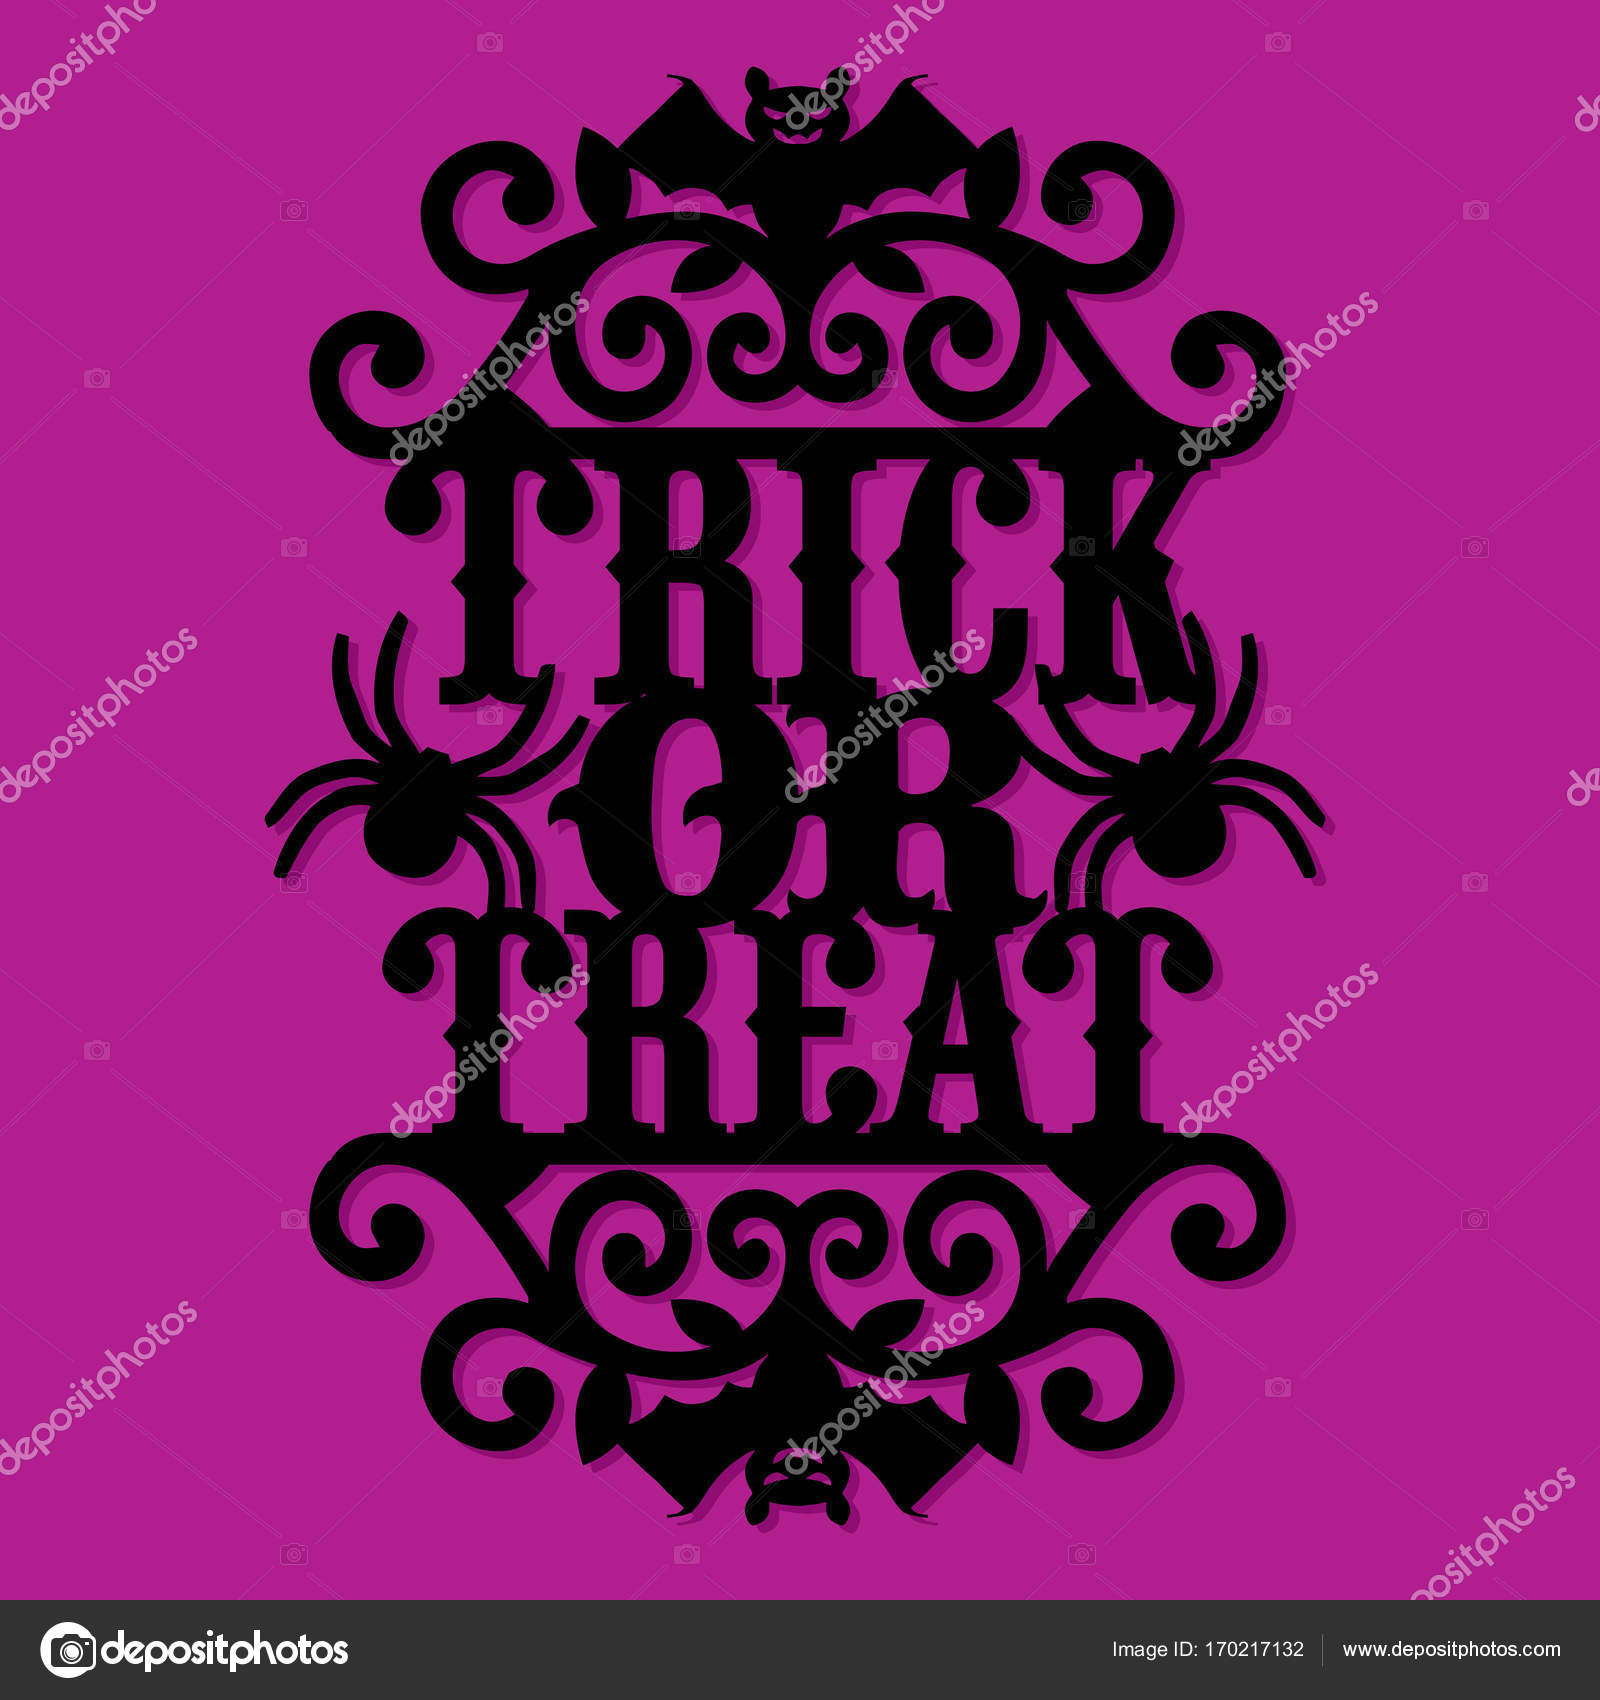 Halloween Trick Or Treat Silhouette.Paper Cut Silhouette Halloween Trick Or Treat Vintage Ornate